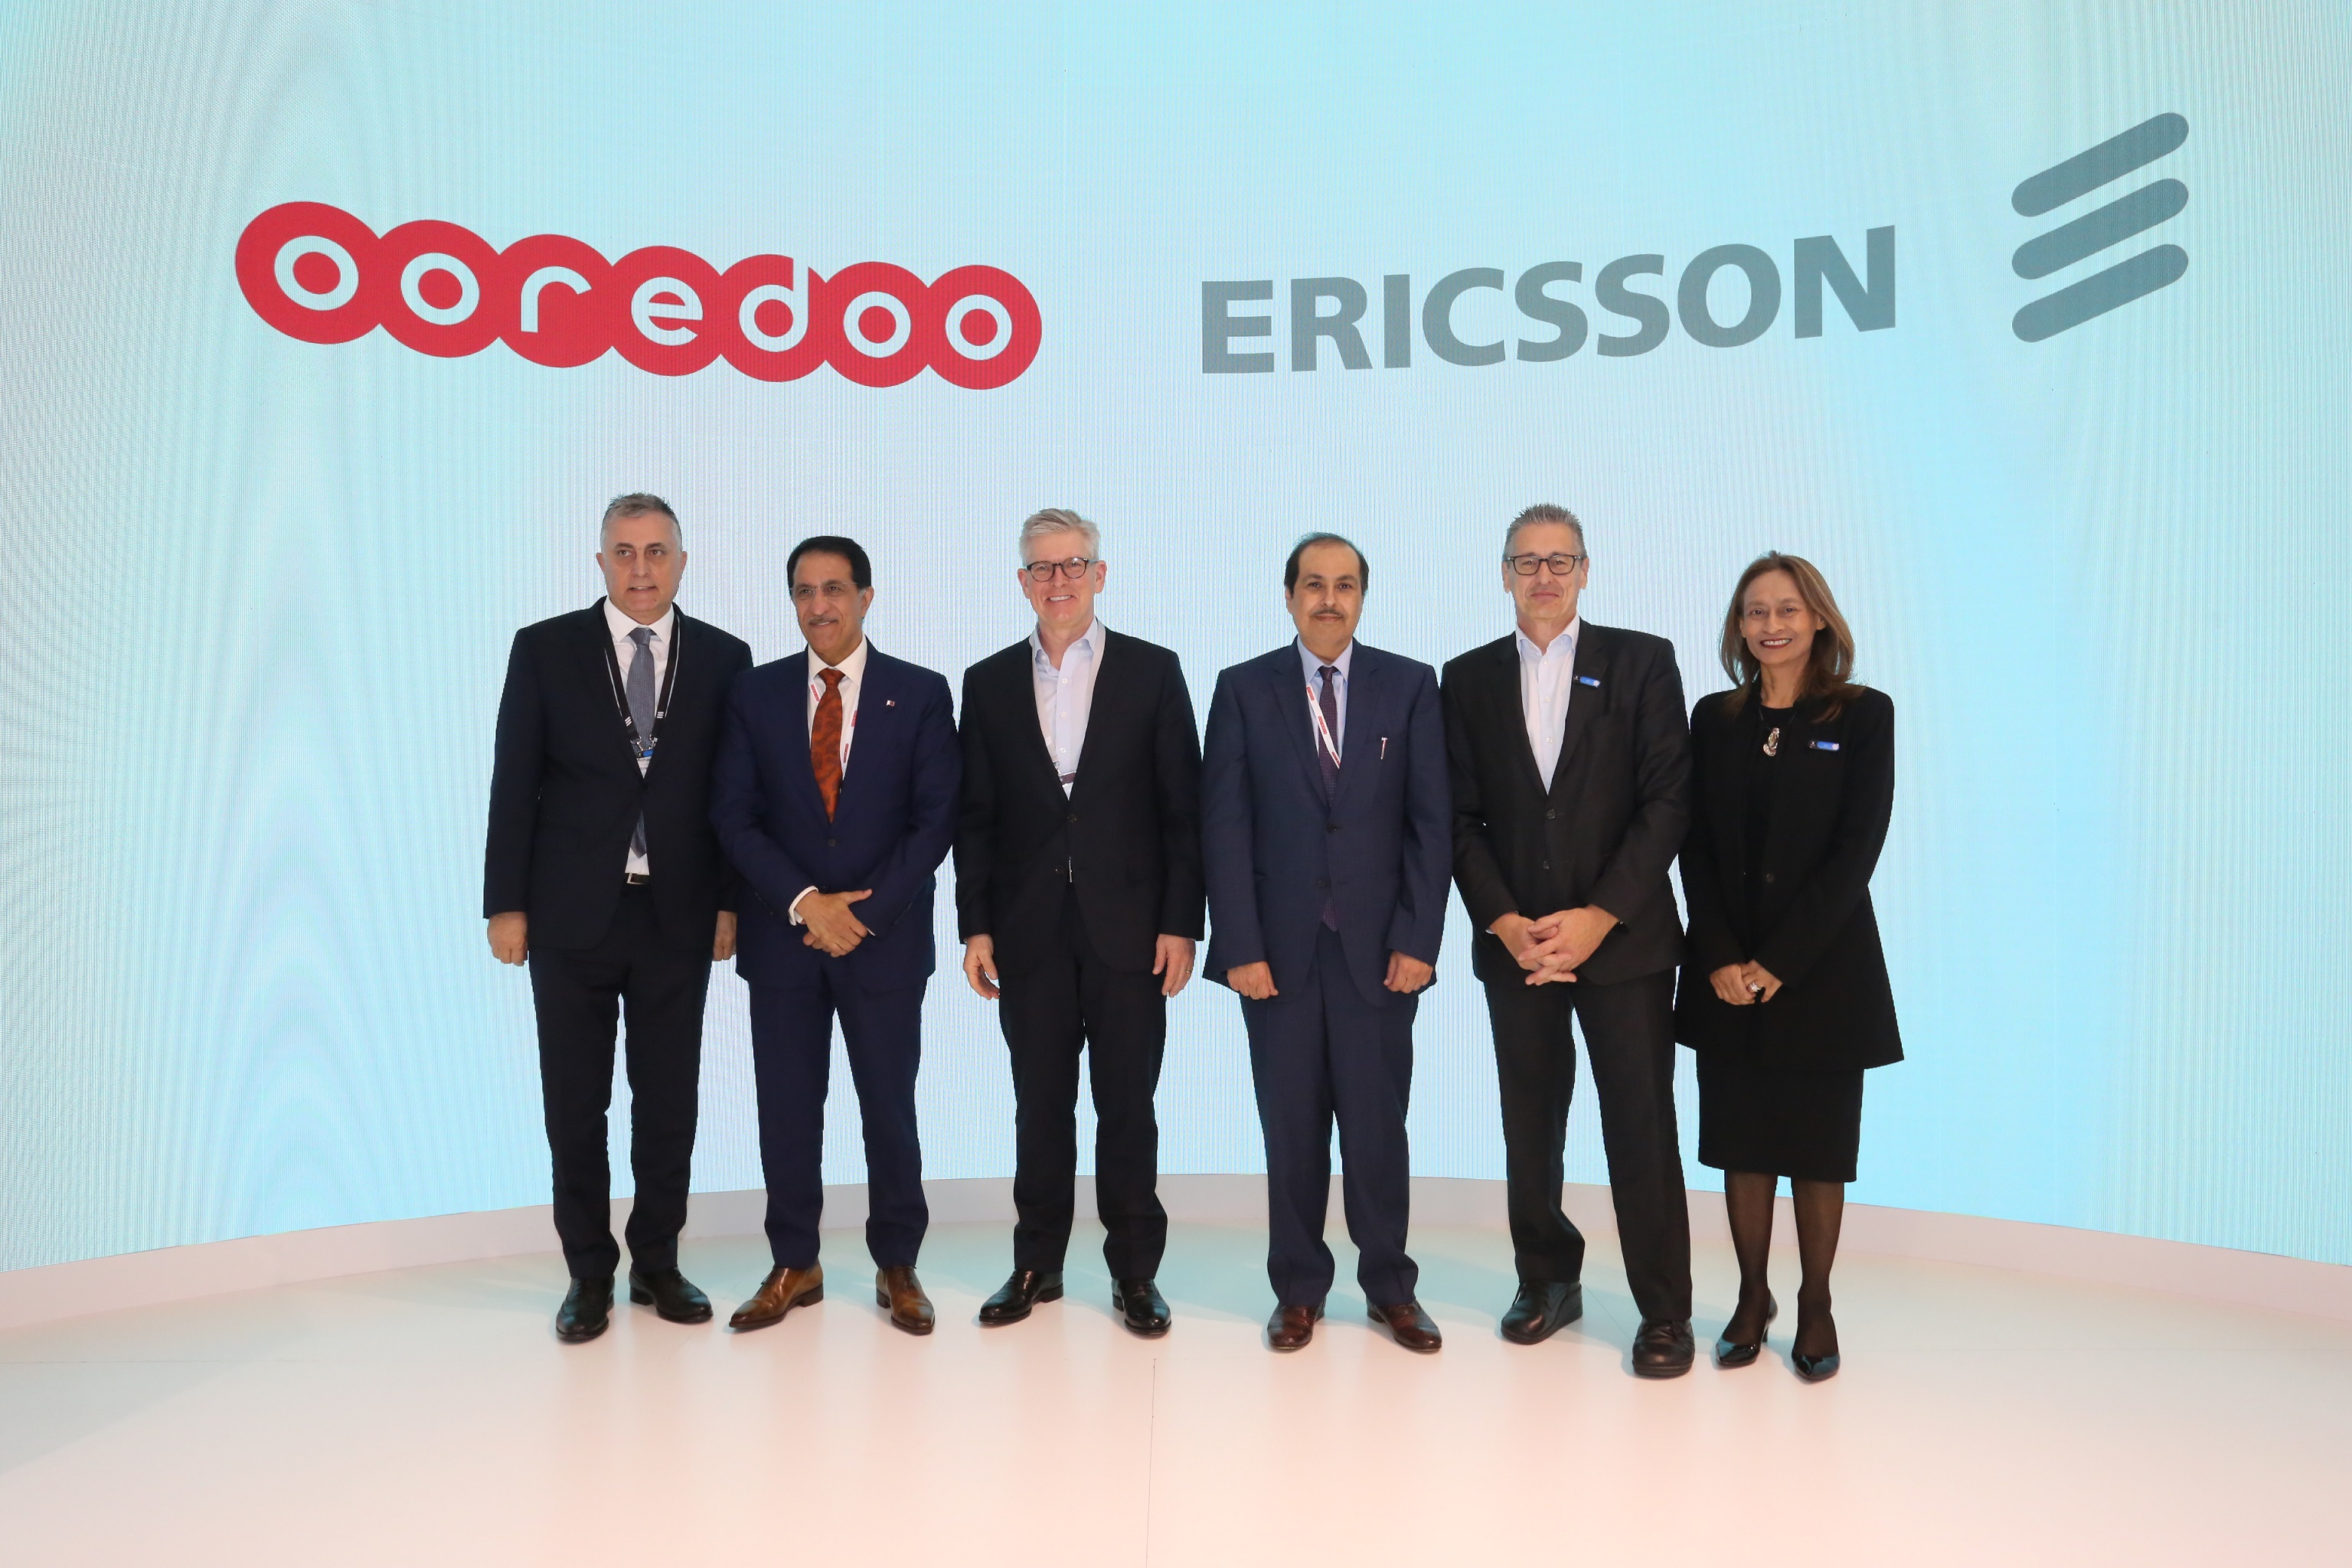 Ooredoo selects Ericsson for 5G | Executive Bulletin